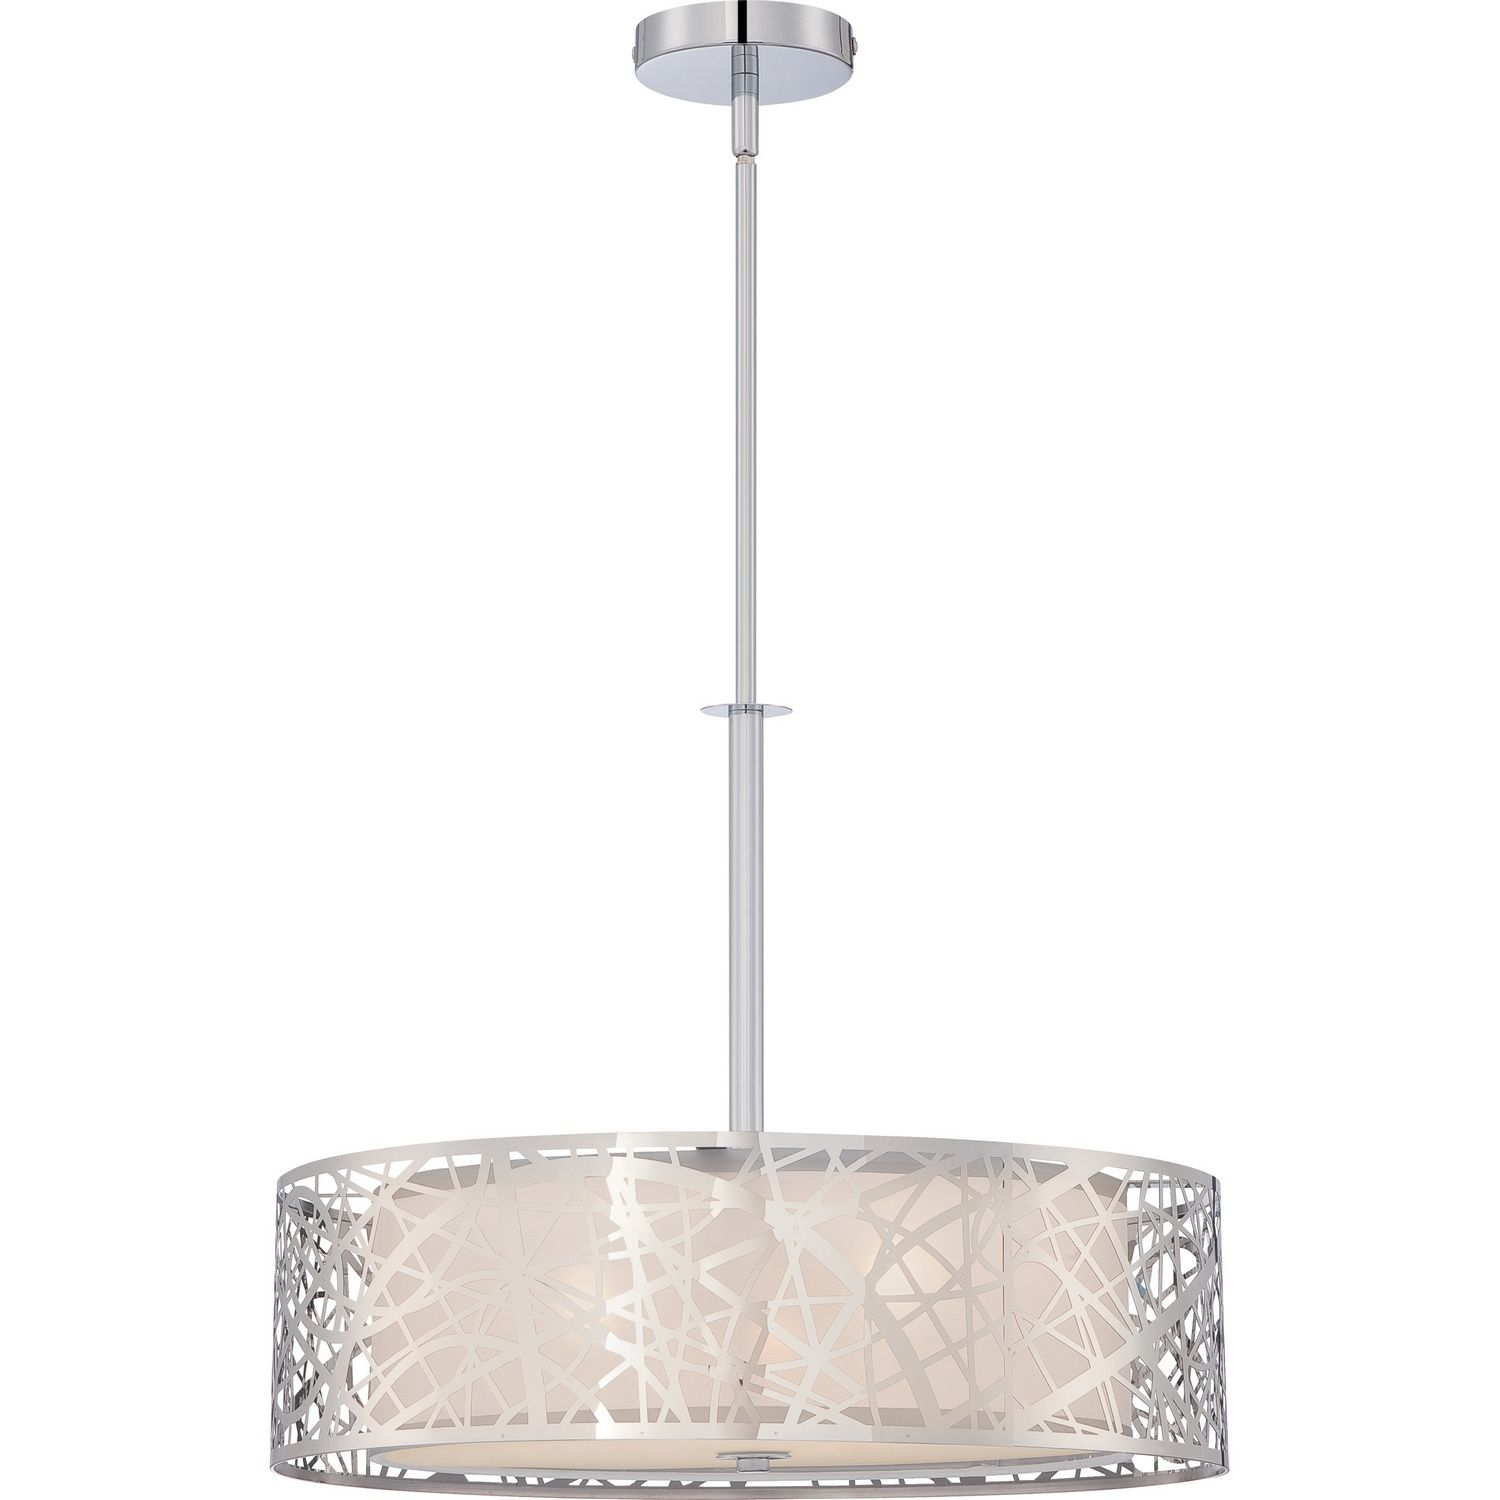 Lighting Fixtures Hortons Home